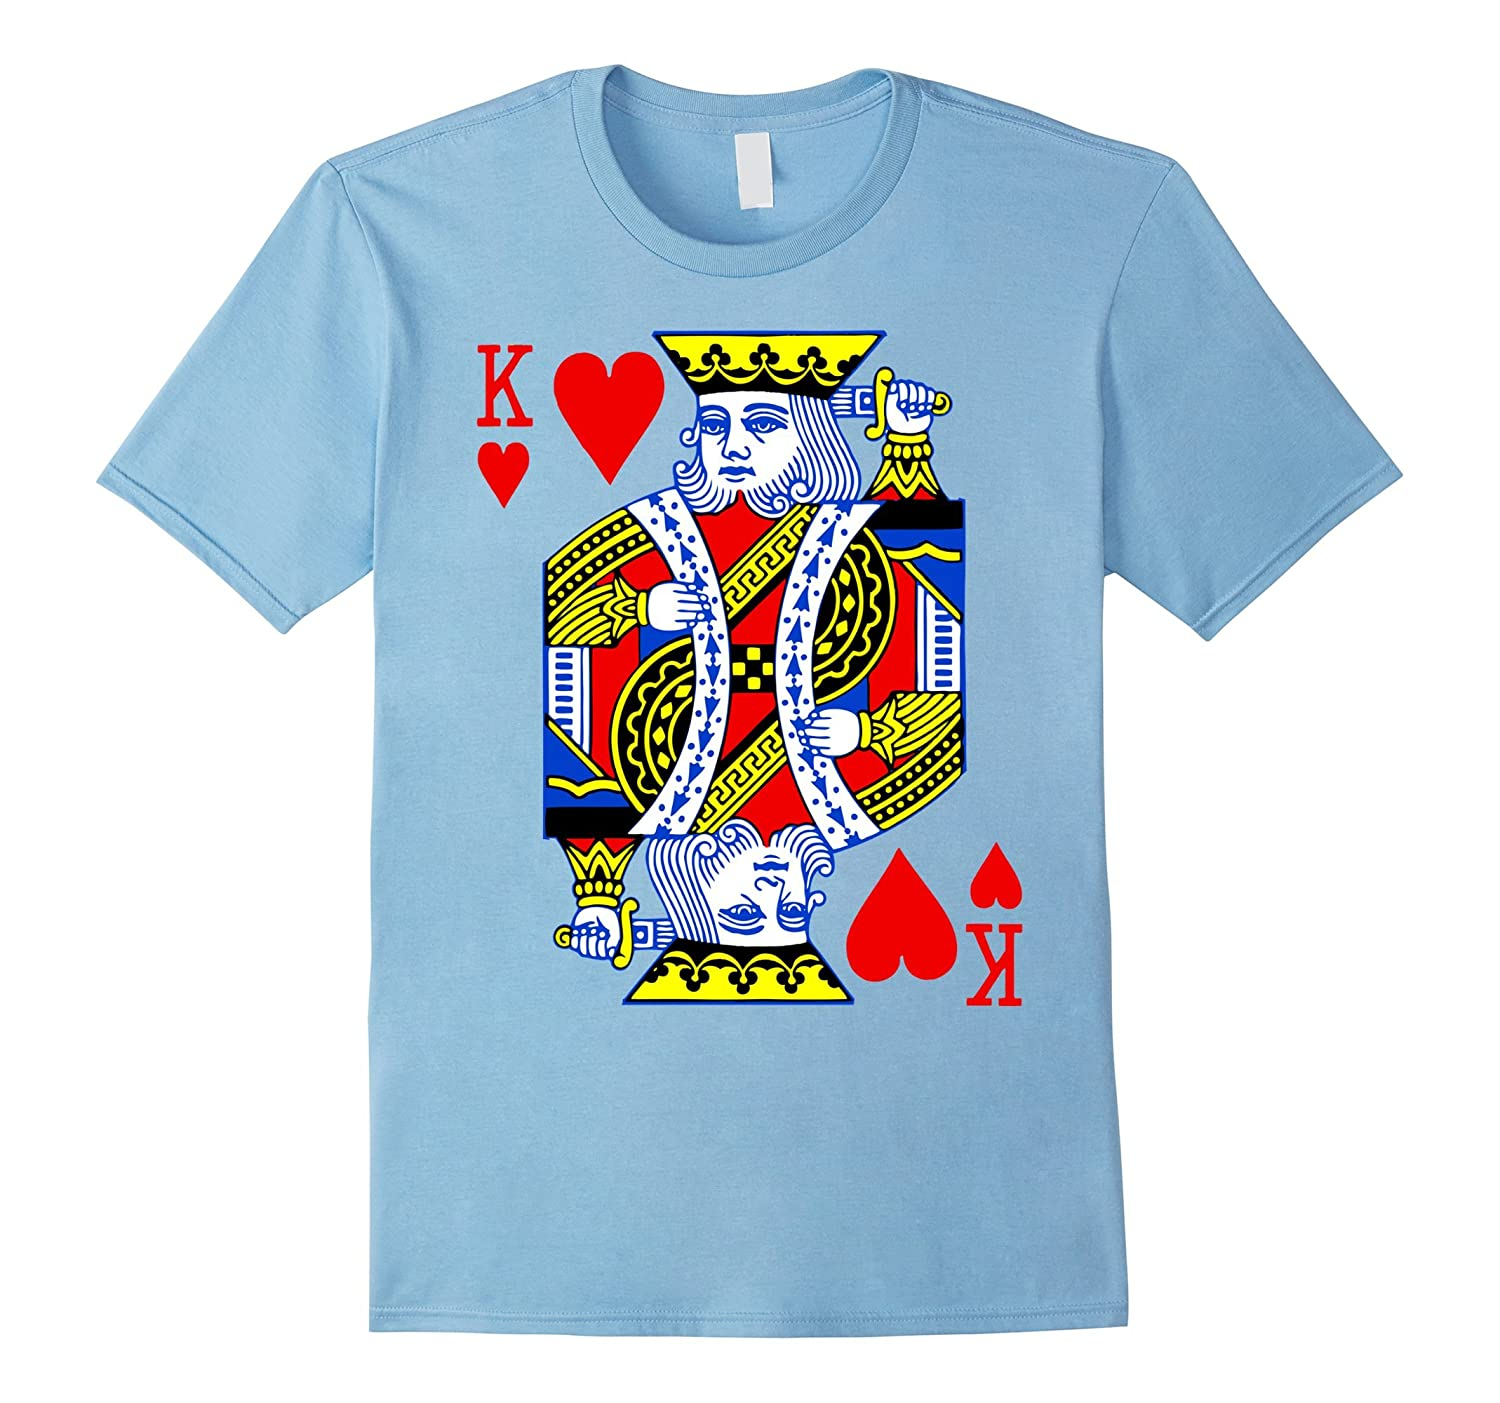 Valentines Day Shirt Couples King Queen Of Hearts Deck Cards Anz